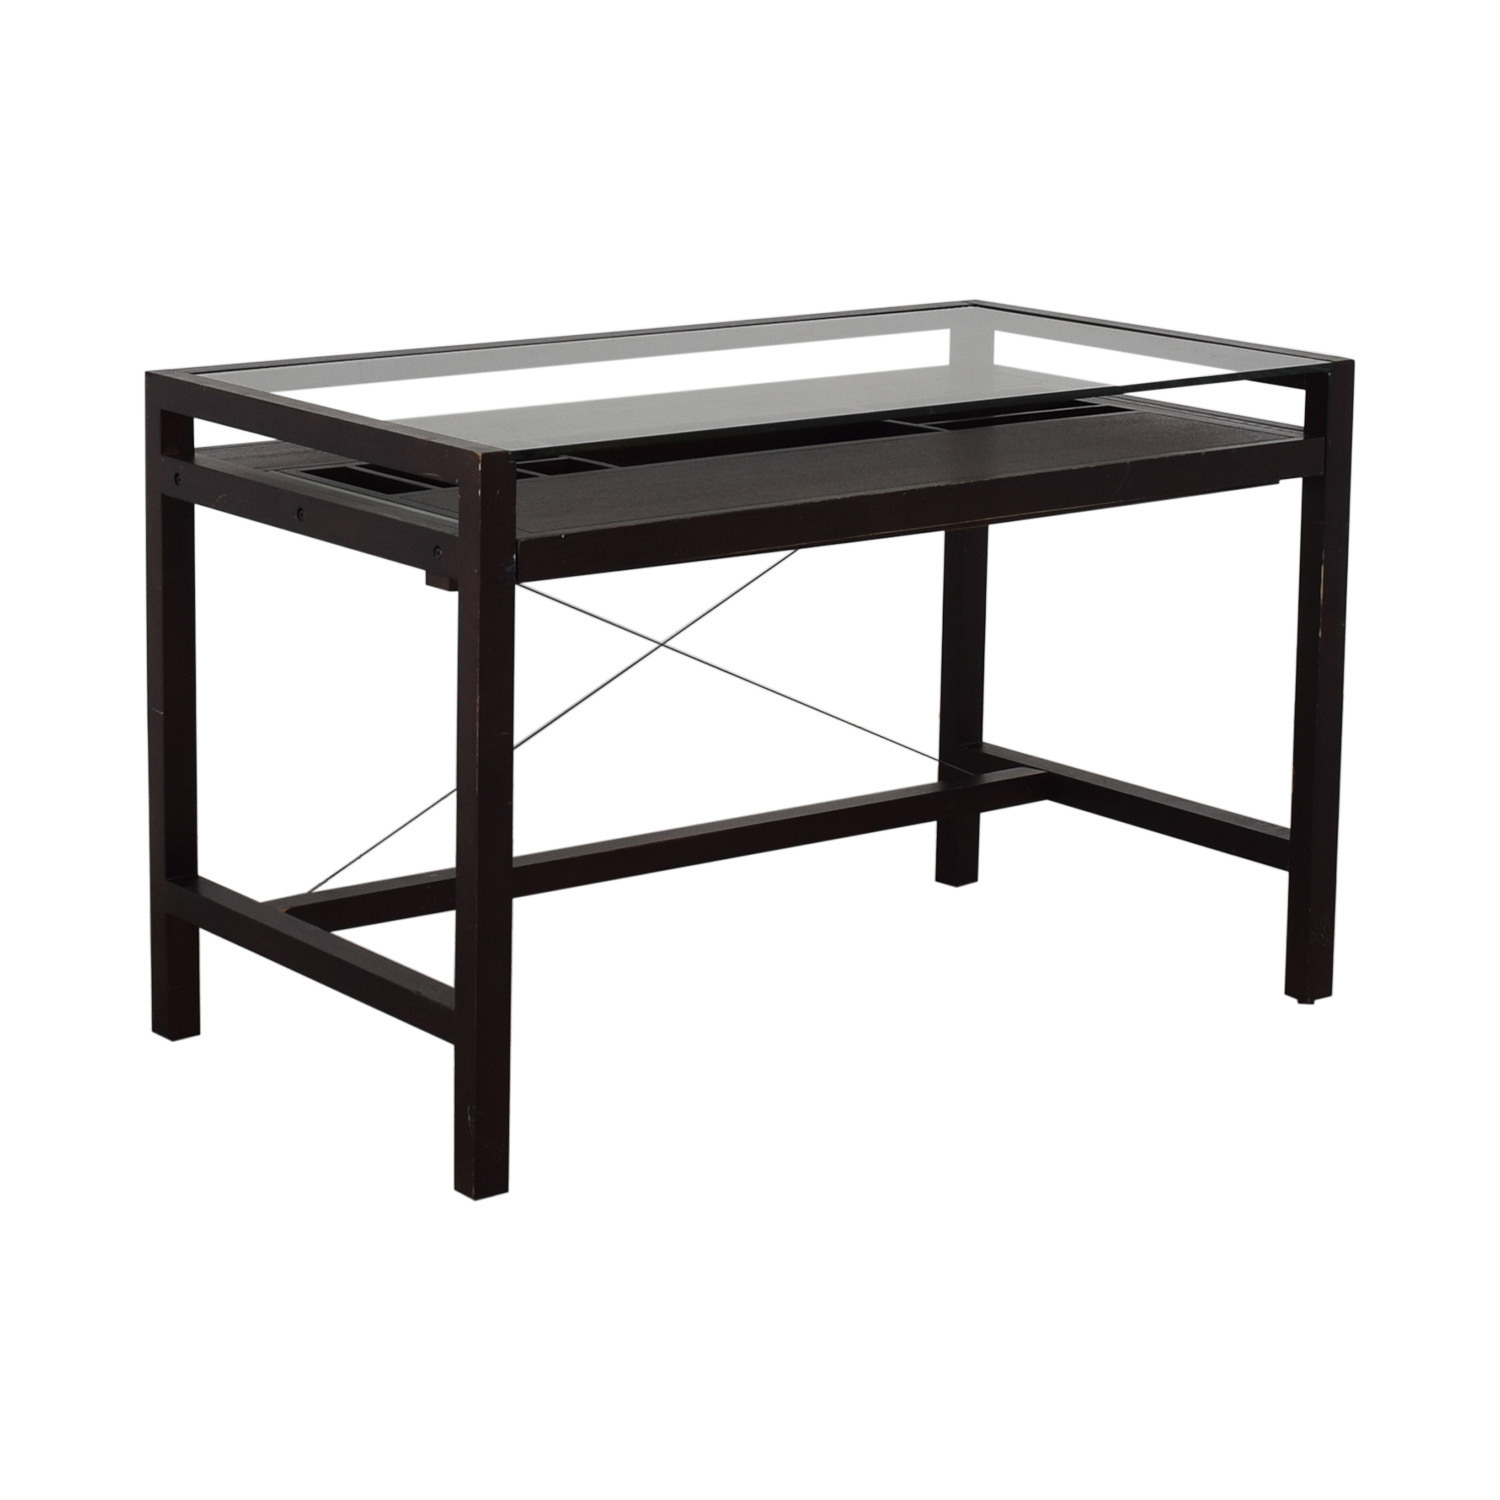 Crate & Barrel Crate & Barrel Glass and Wood Walker Desk Tables